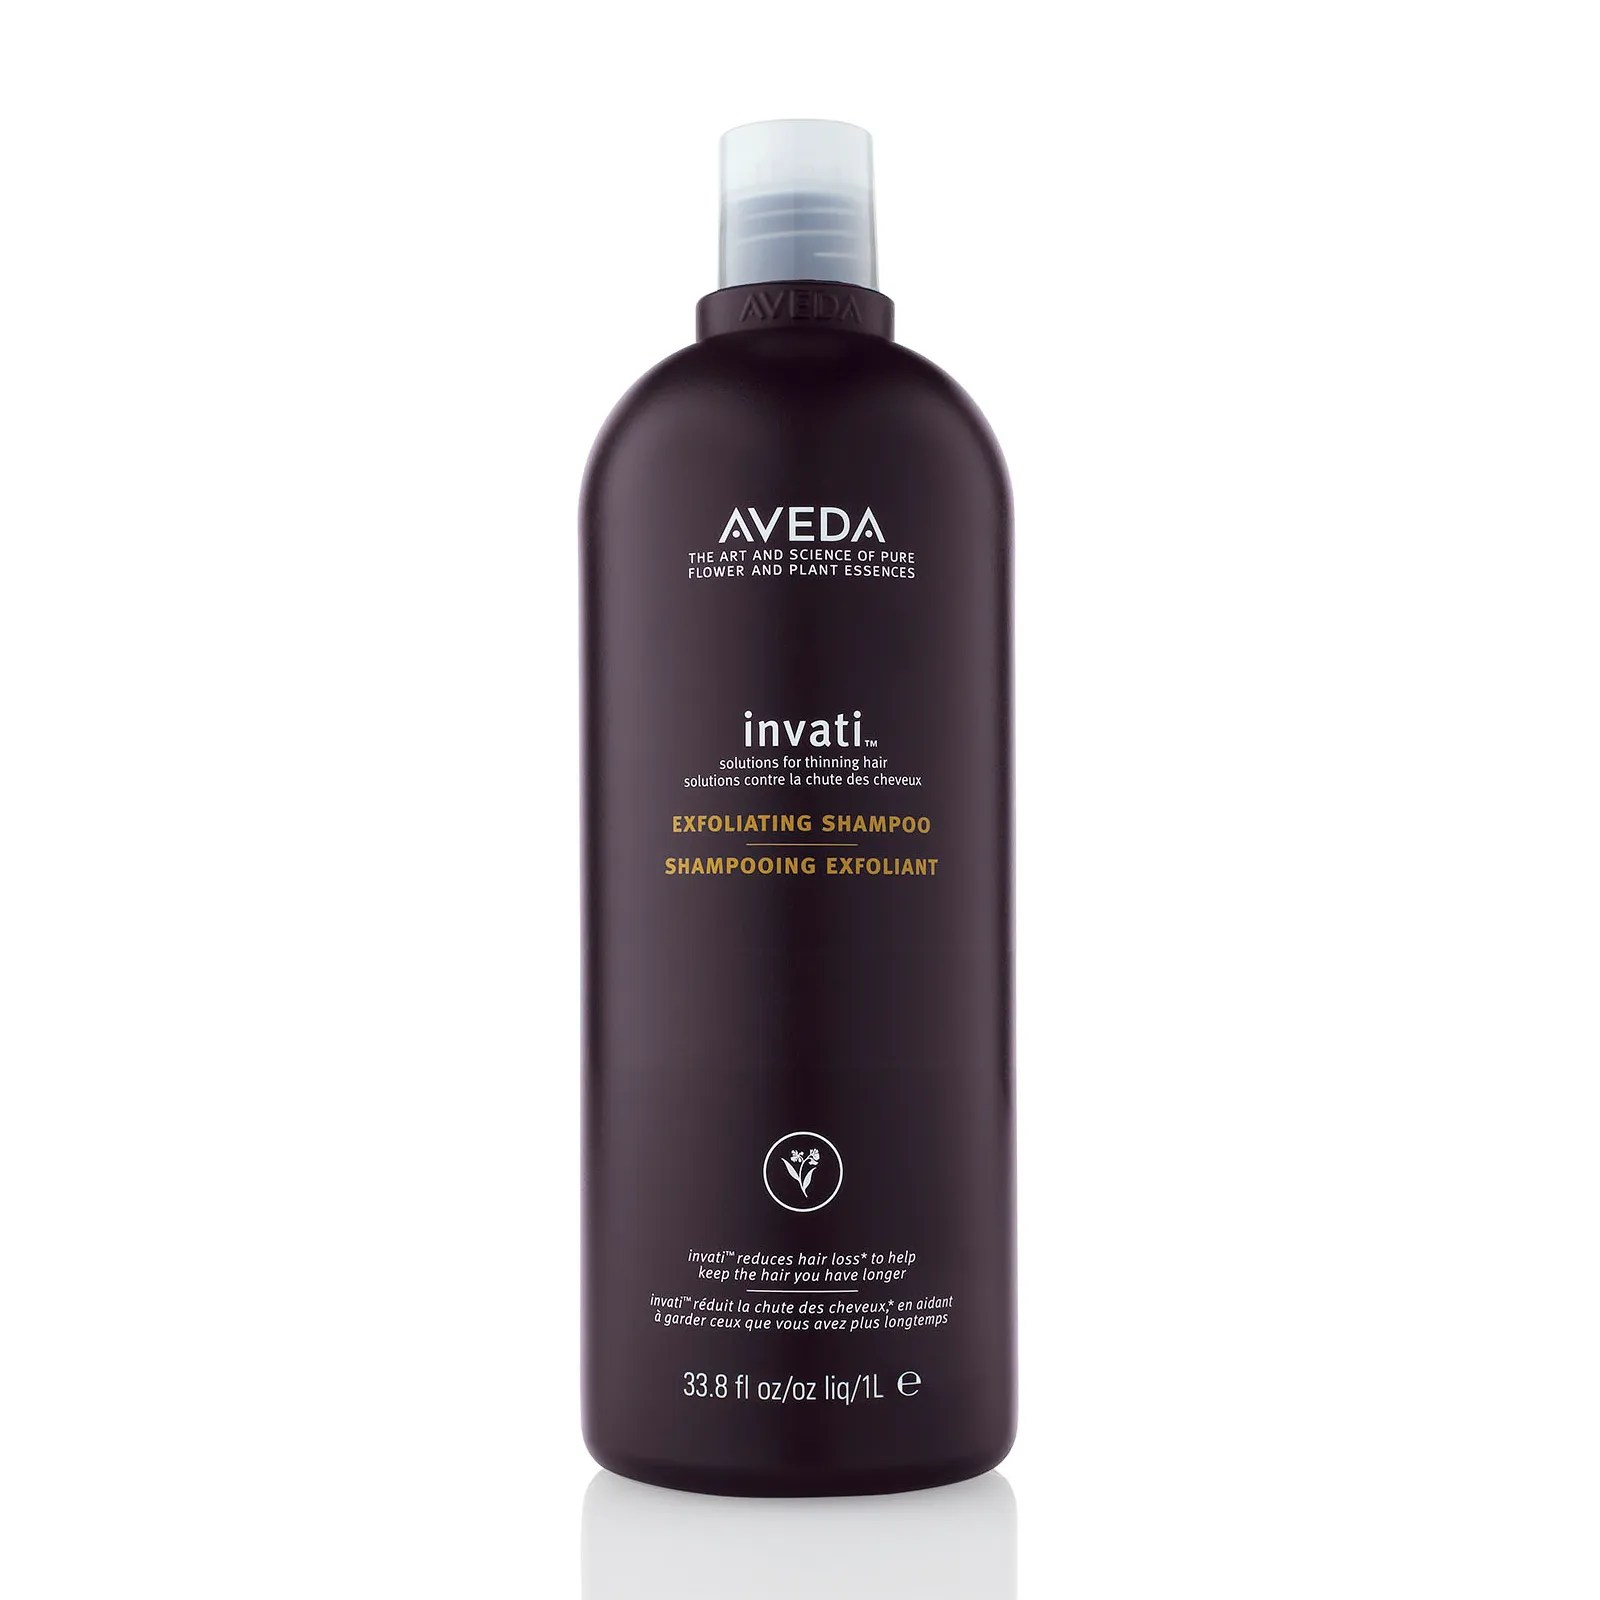 Aveda Invati Exfoliating Shampoo Review Allure